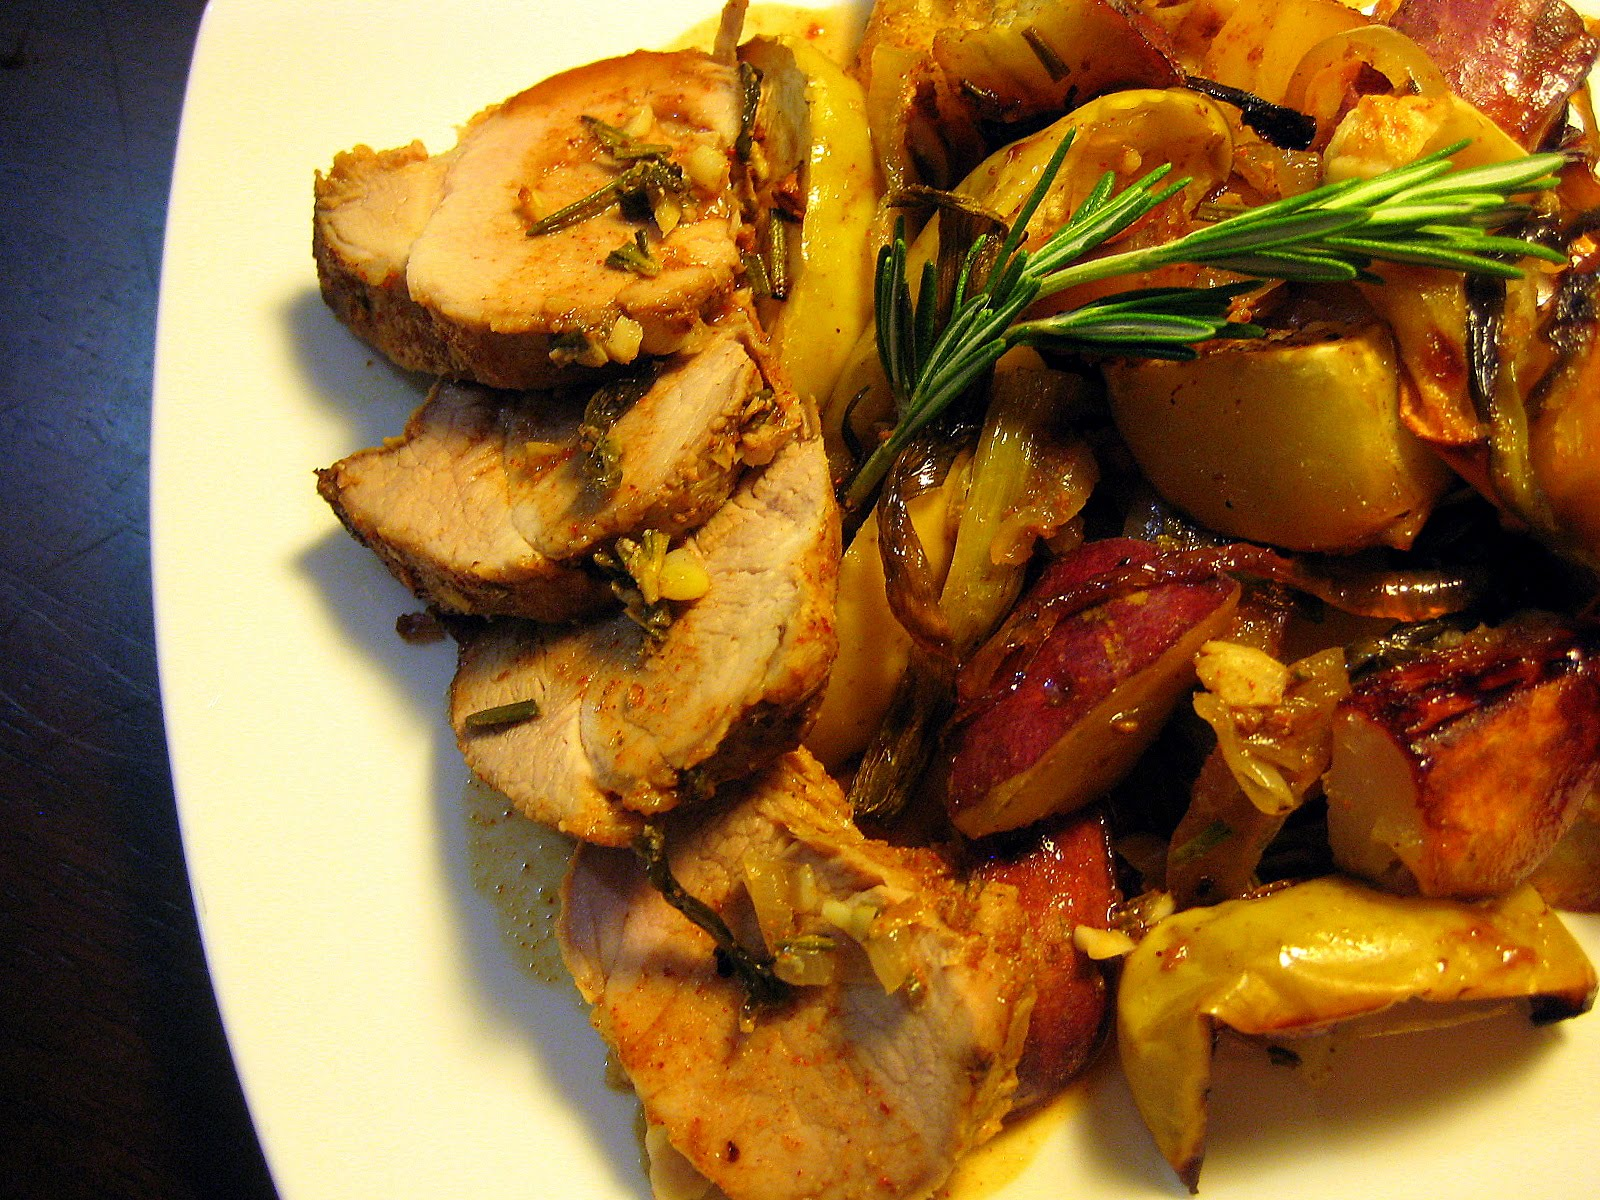 ... : ROASTED SWEET AND SOUR PORK TENDERLOIN WITH SWEET POTATOES & APPLES